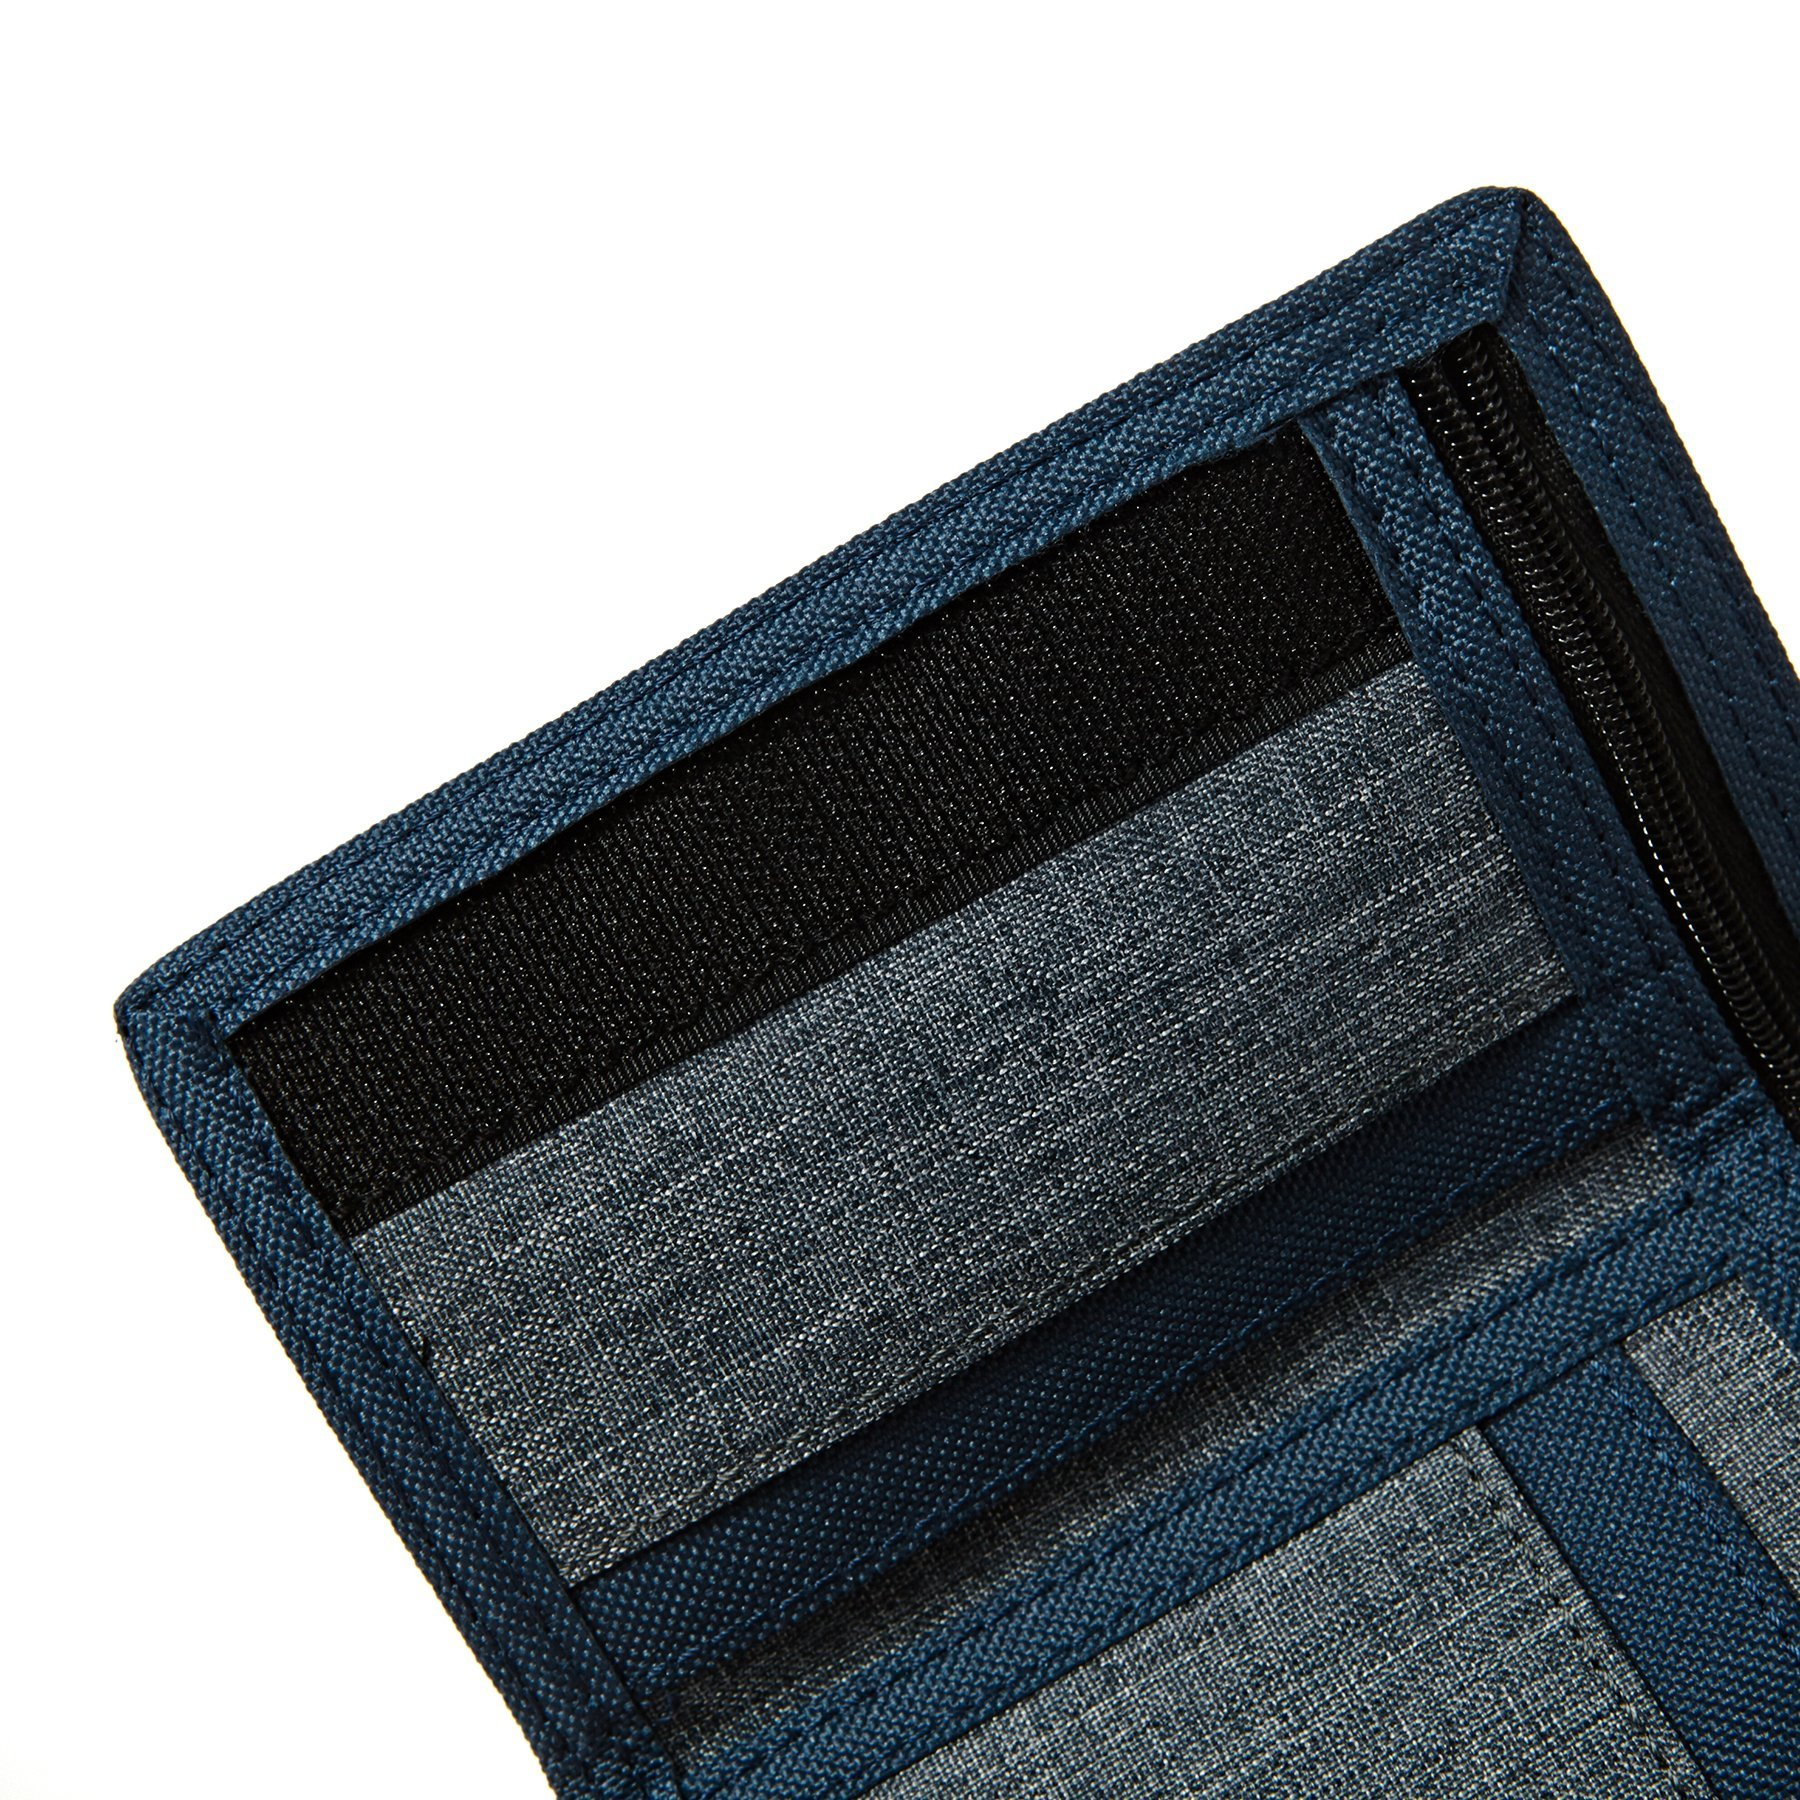 Billabong Atom Wallet One Size Dark Slate Heather by Billabong (Image #5)